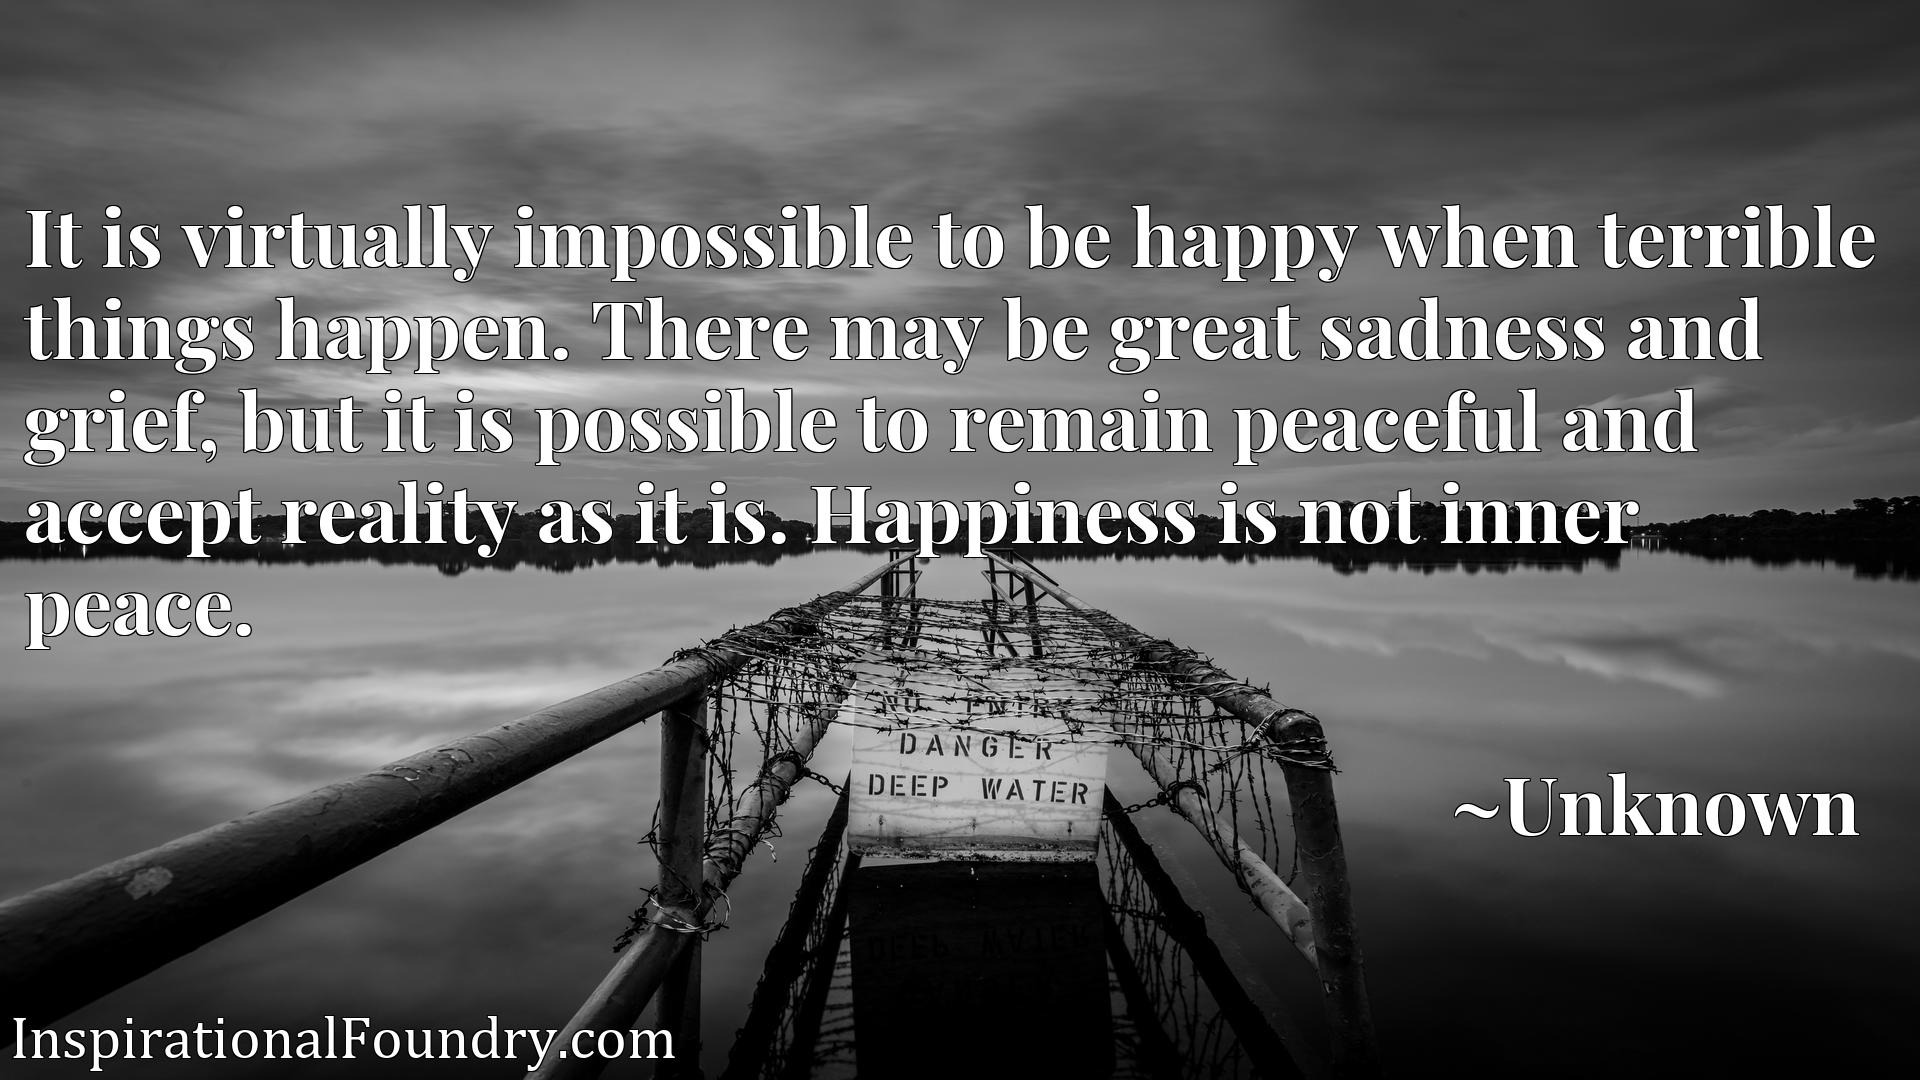 It is virtually impossible to be happy when terrible things happen. There may be great sadness and grief, but it is possible to remain peaceful and accept reality as it is. Happiness is not inner peace.